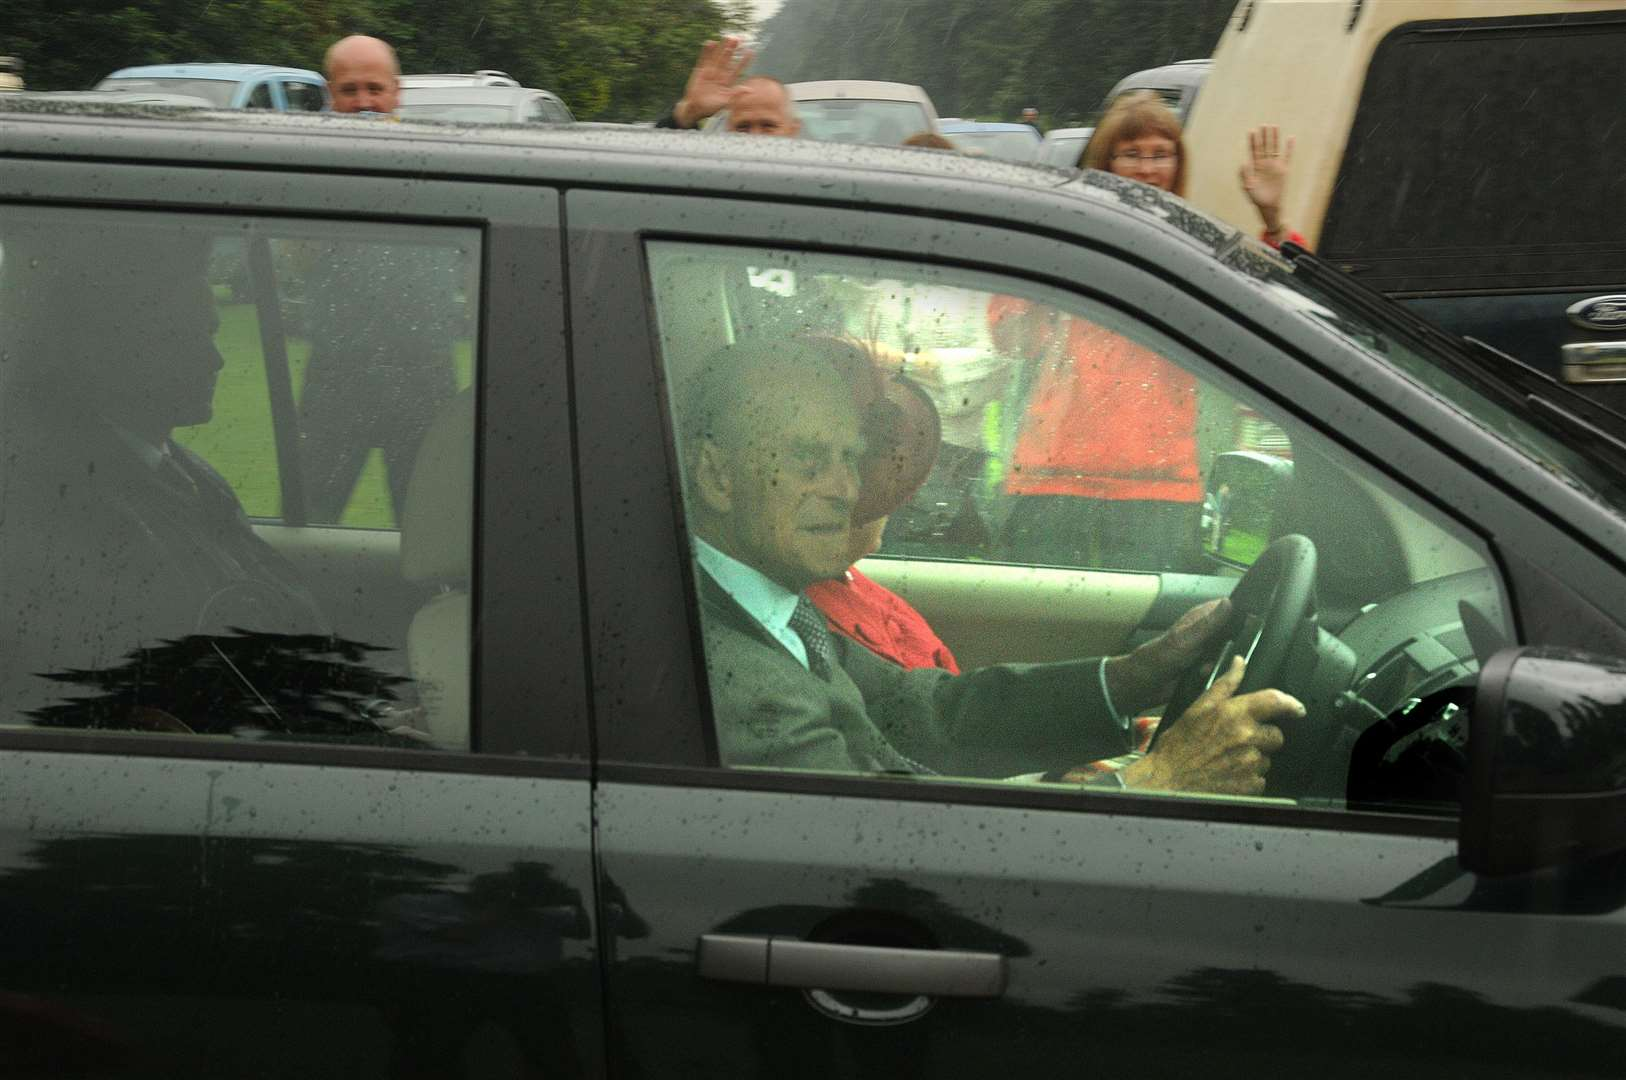 The Duke of Edinburgh at the wheel of his car on a previous occasion